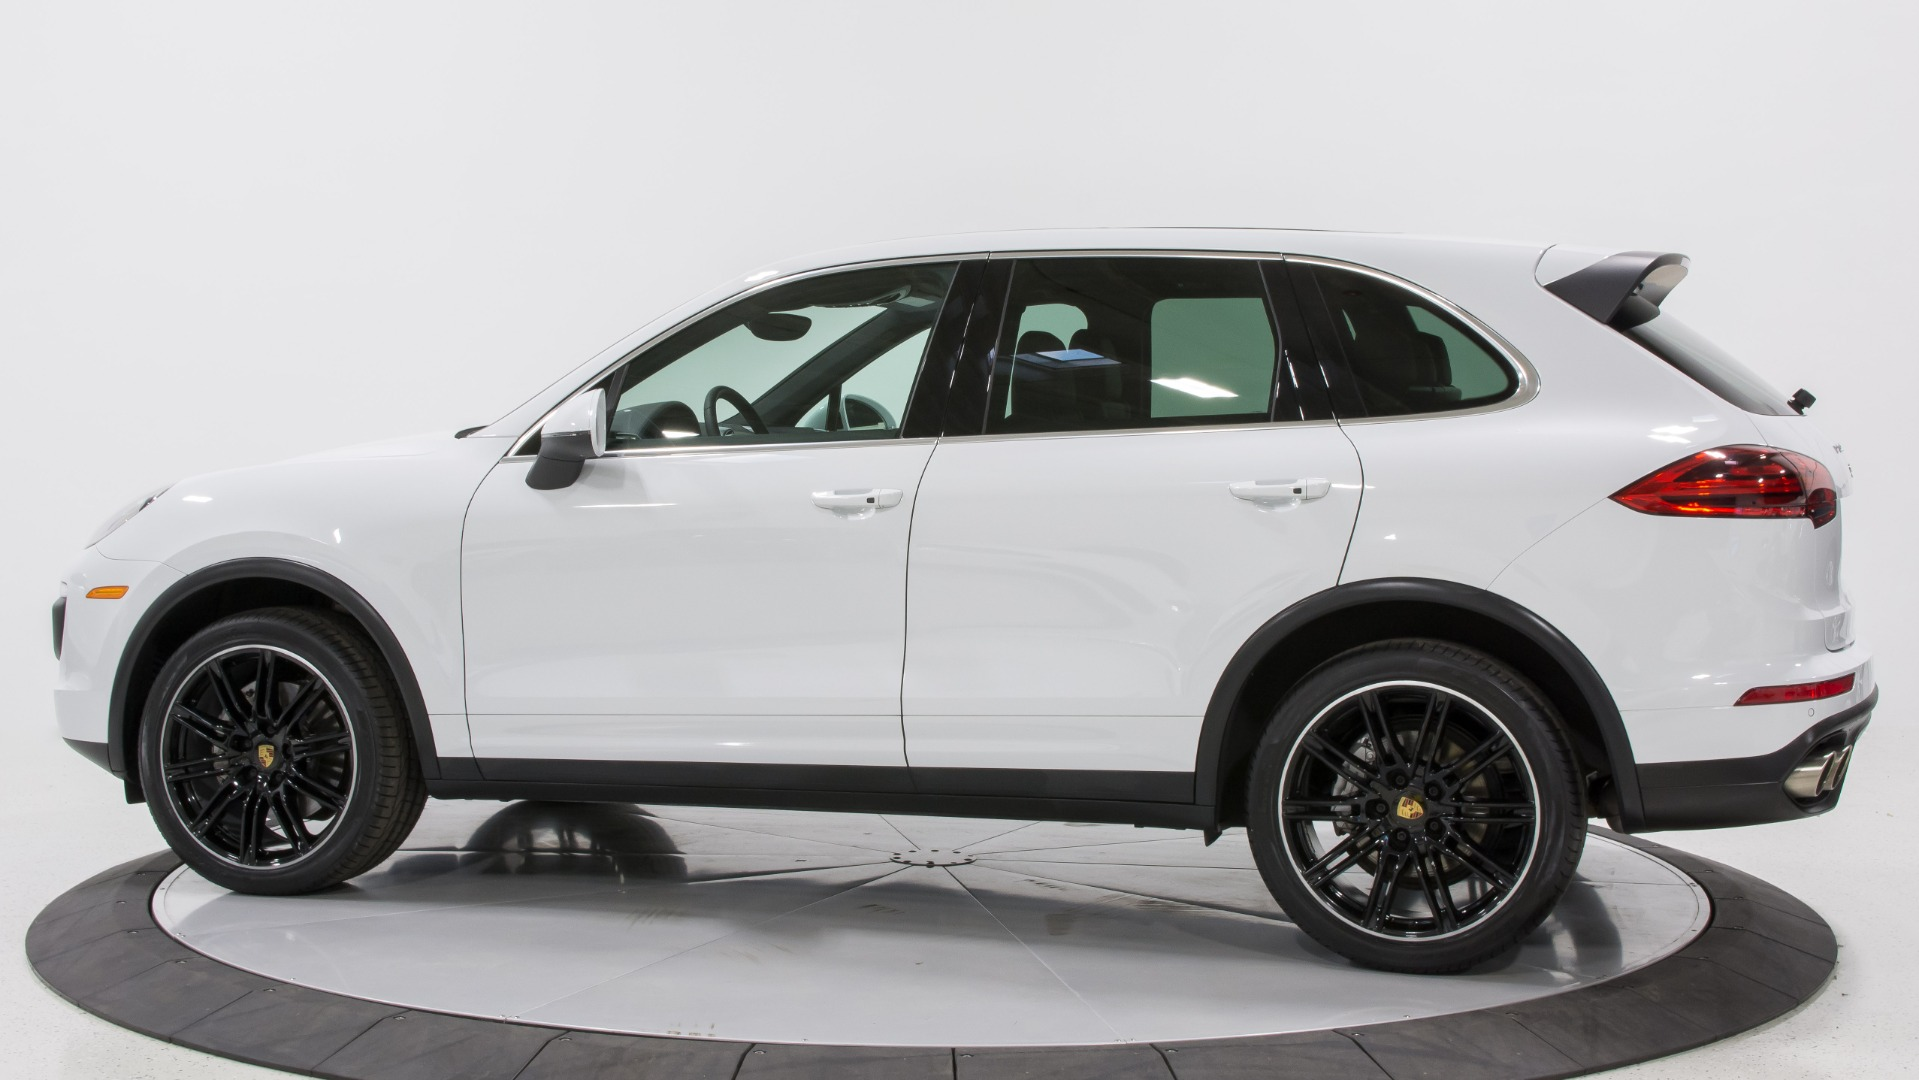 hight resolution of 2015 porsche cayenne s stock 22567 for sale near pompano beach fl porsche cayenne console 2015 porsche cayenne trailer wiring